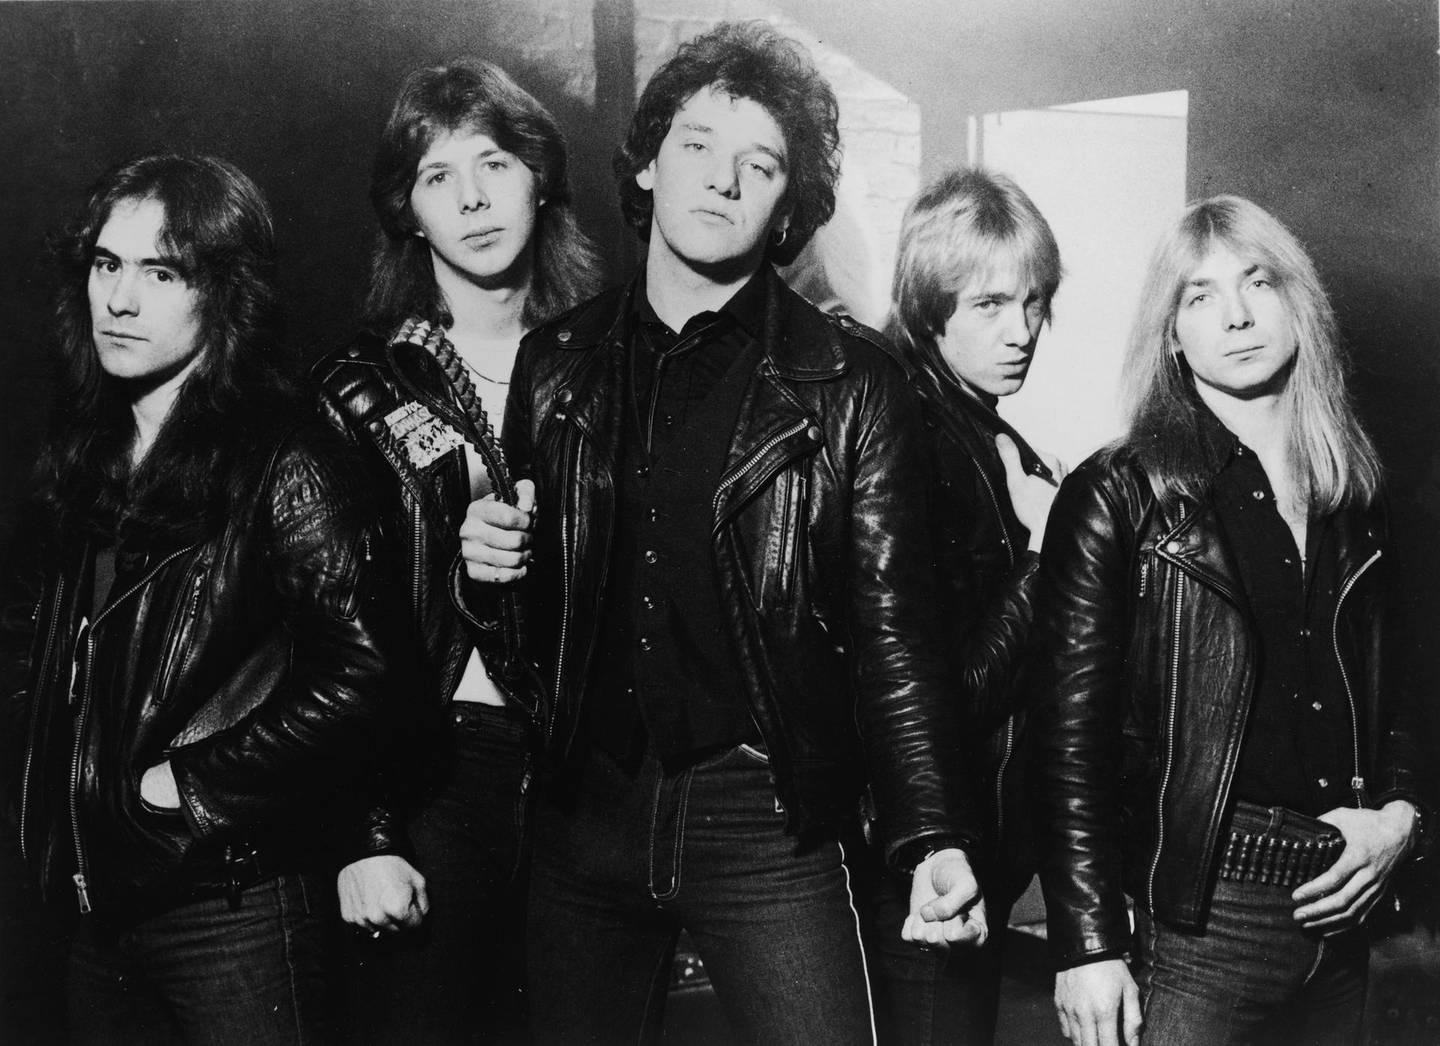 Promotional portrait of British heavy metal group, Iron Maiden, 1981: (L-R) Steve Harris, Clive Burr, Paul Di'Anno, Adrian Smith, and Dave Murray. (Photo by Robert Ellis/Hulton Archive/Getty Images)